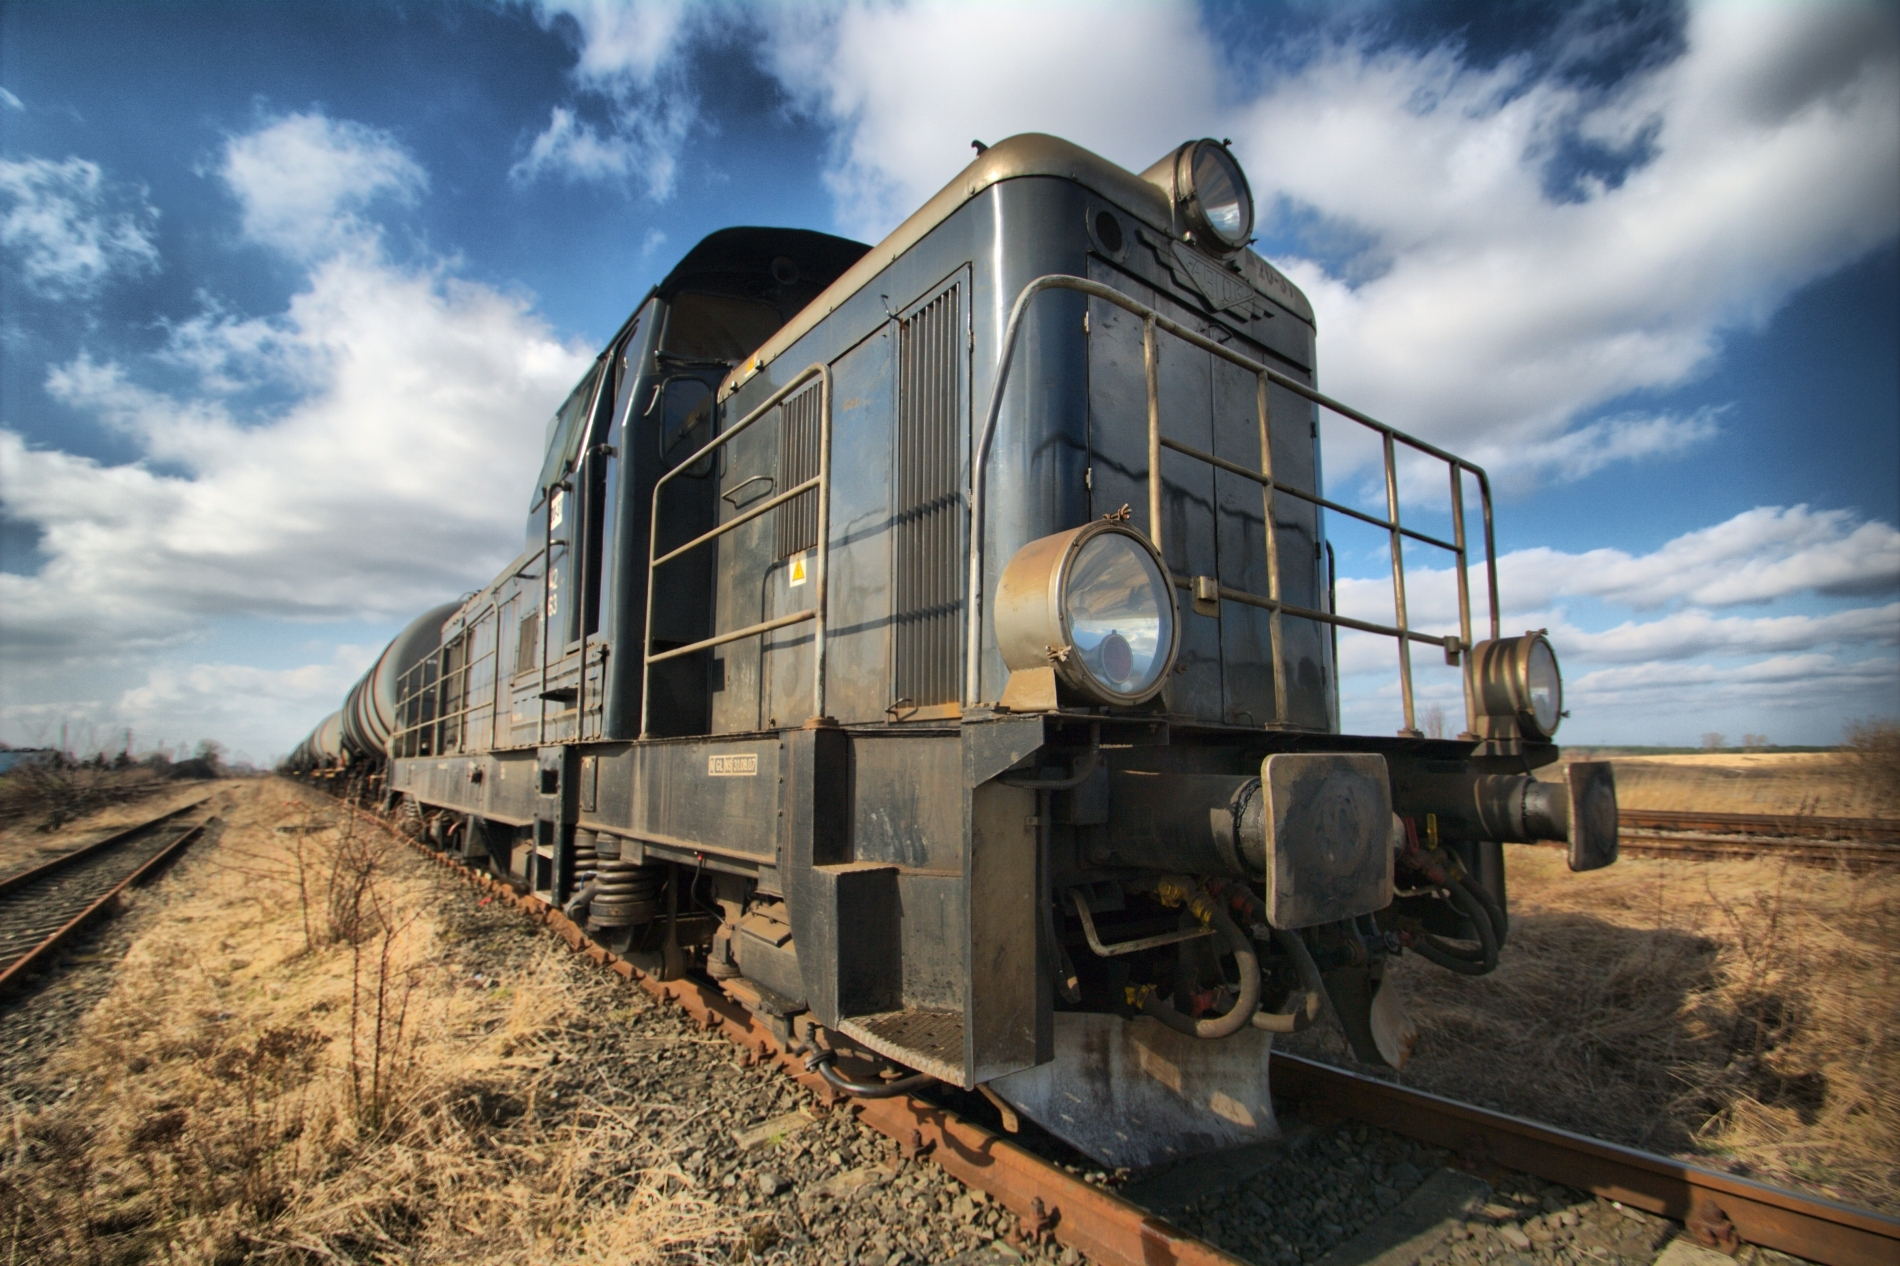 trains vehicles SM42 HD Wallpaper